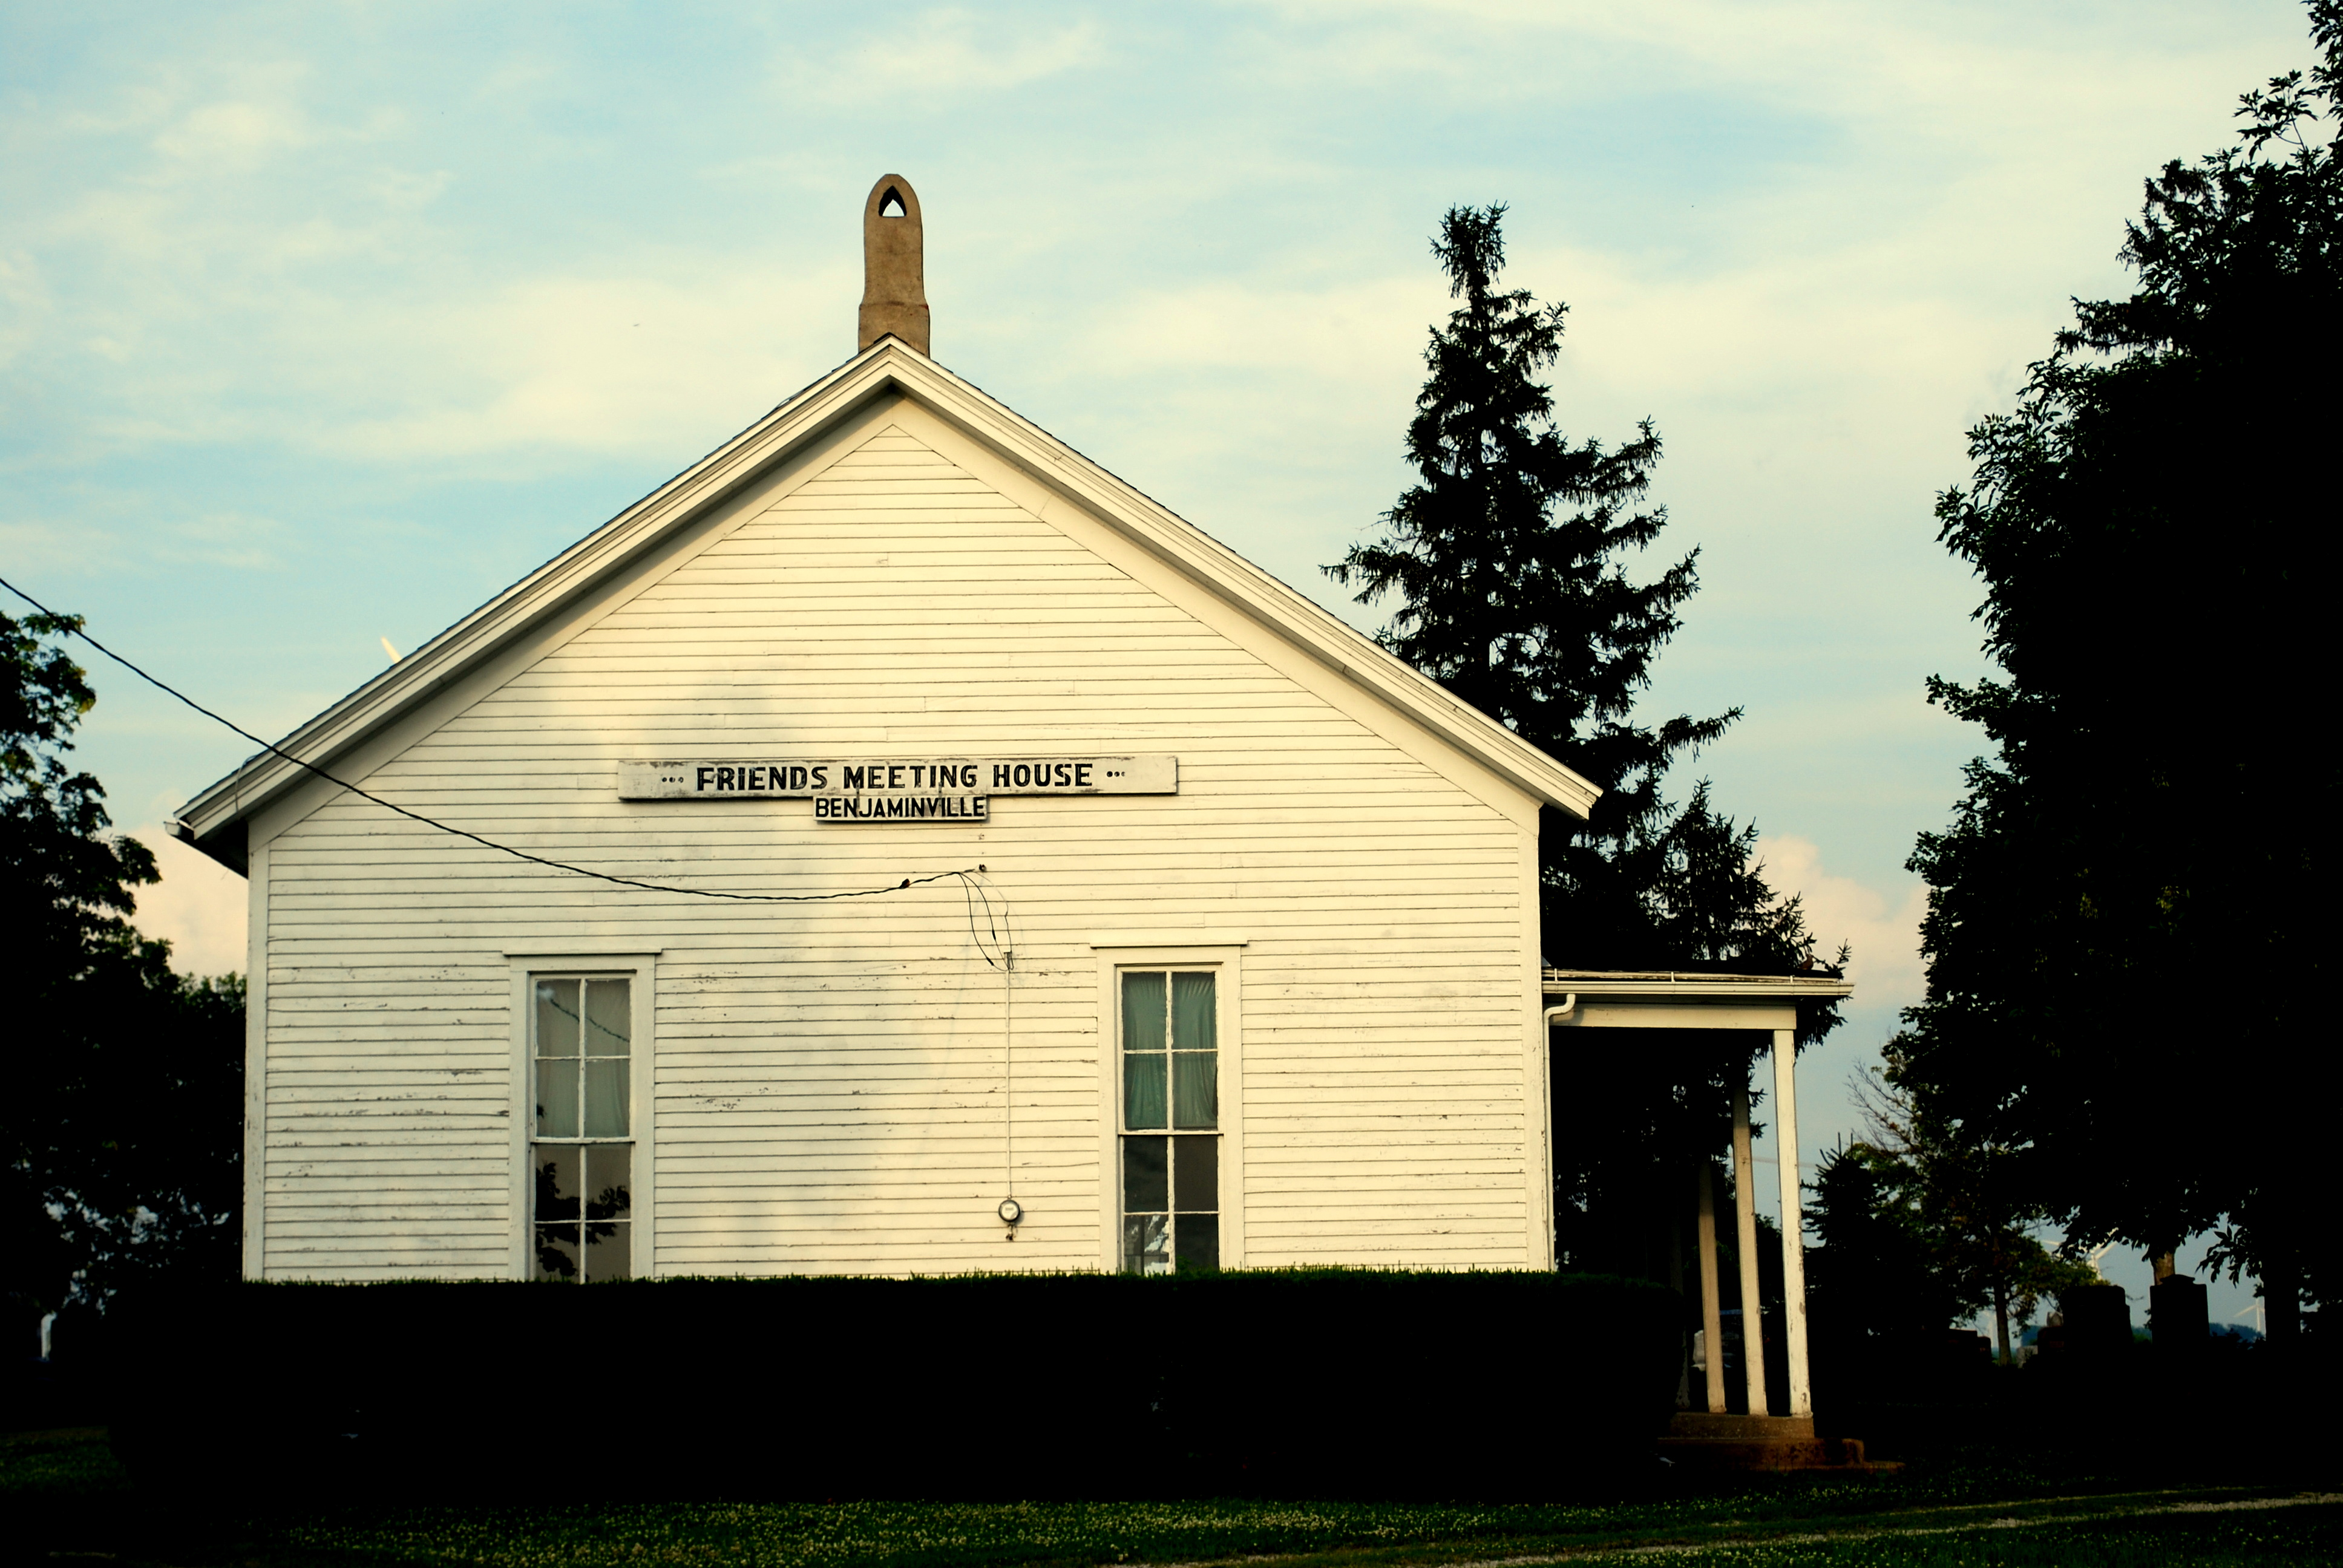 Benjaminville Friends Meeting House